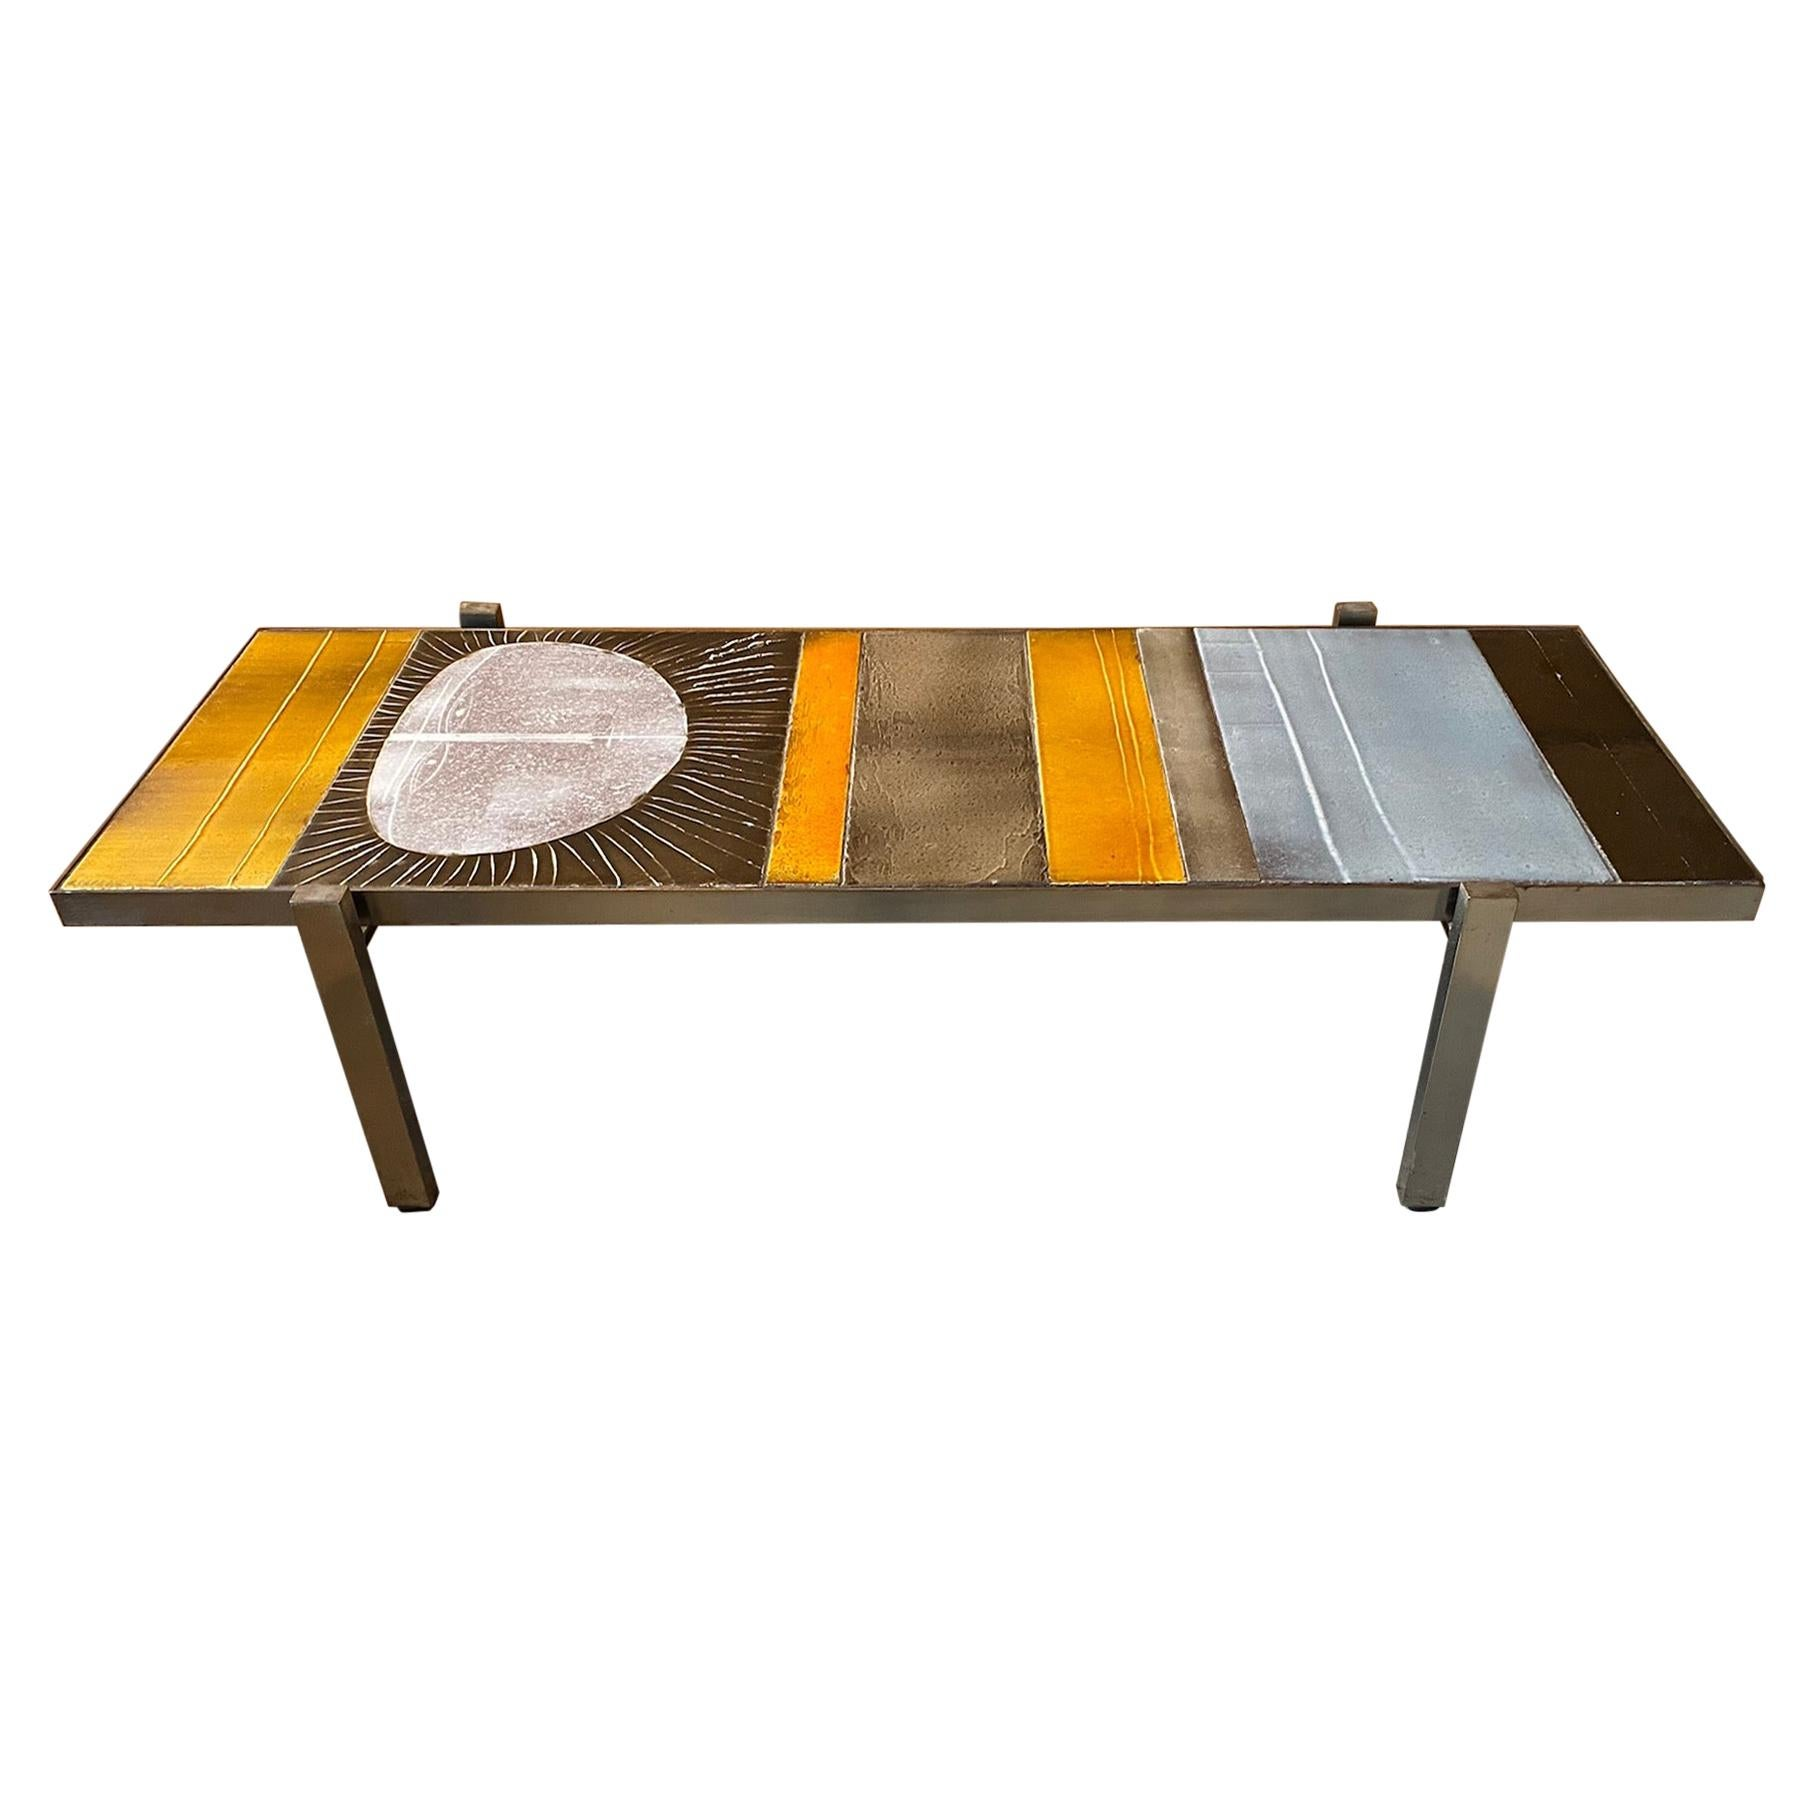 """Roger Capron Ceramic Coffee Table """"Soleil"""", France, 50s"""